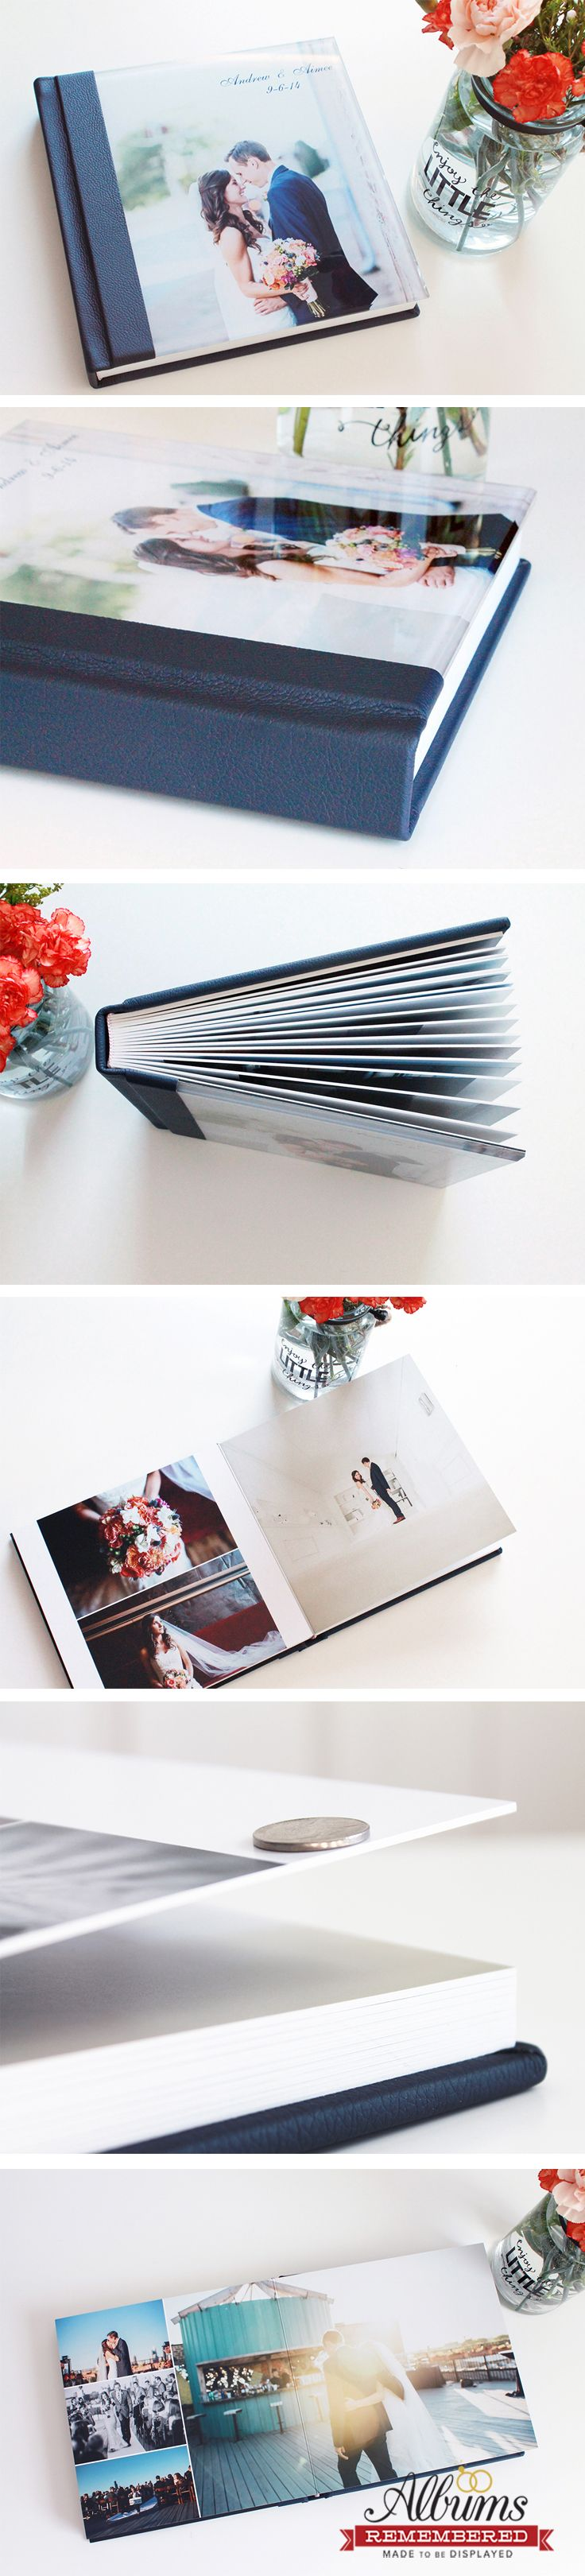 Professional wedding photo albums directly to the public at an affordable price. With each album purchasing, it includes free design with unlimited revisions as well as a digital flip album that can be shared with family and friends. Check us out at www.albumsremembered.com